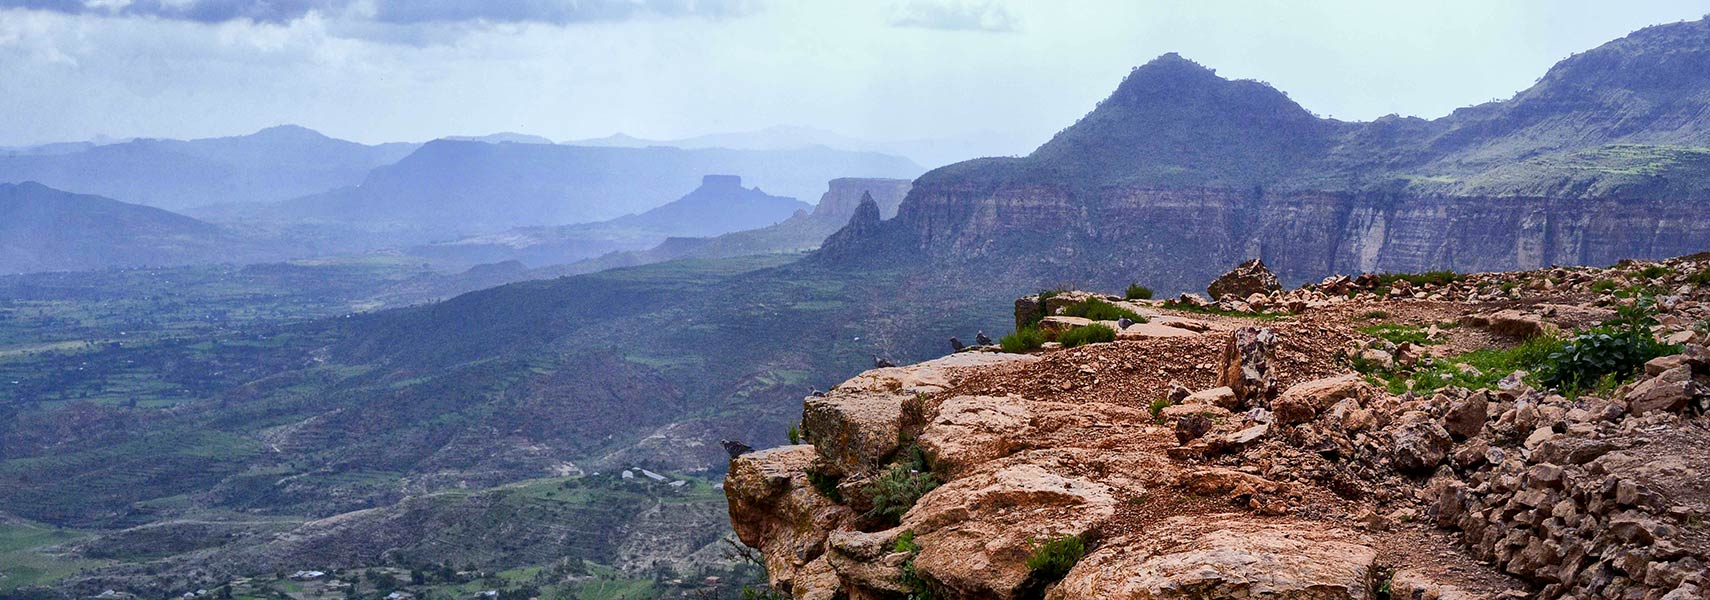 Ethiopia - Country Profile - Nations Online Project